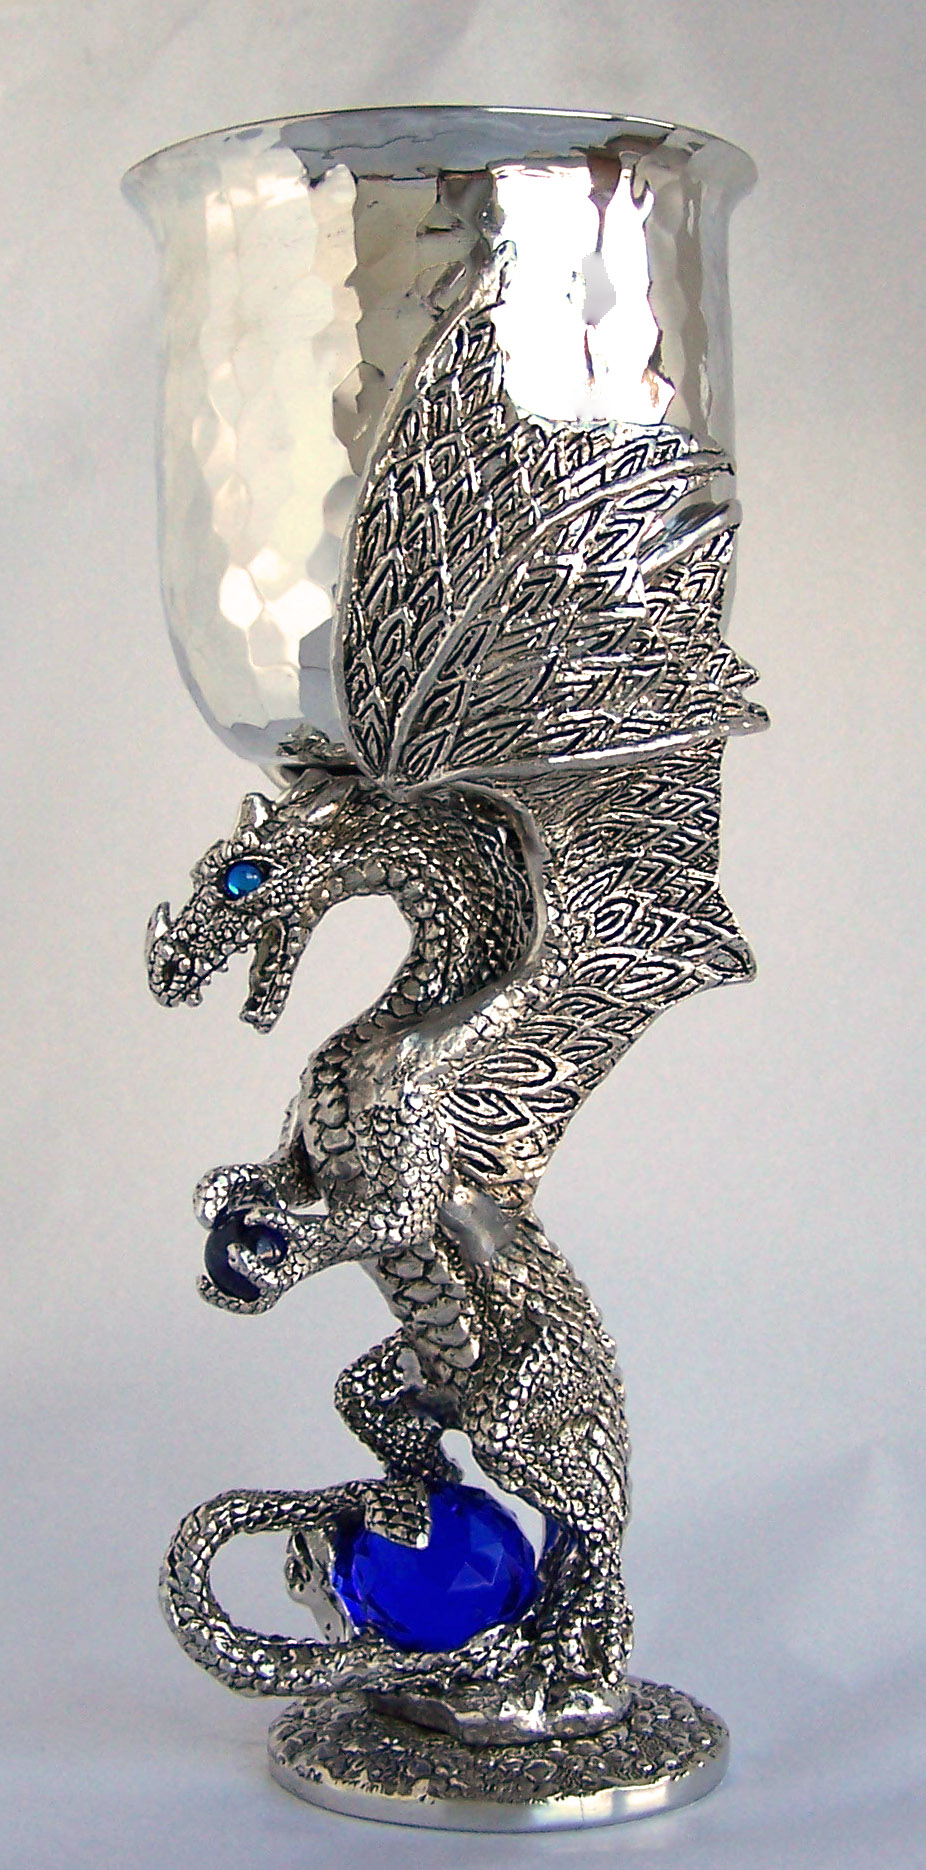 Platinum Dragon Pewter Goblet (Limited Edition)